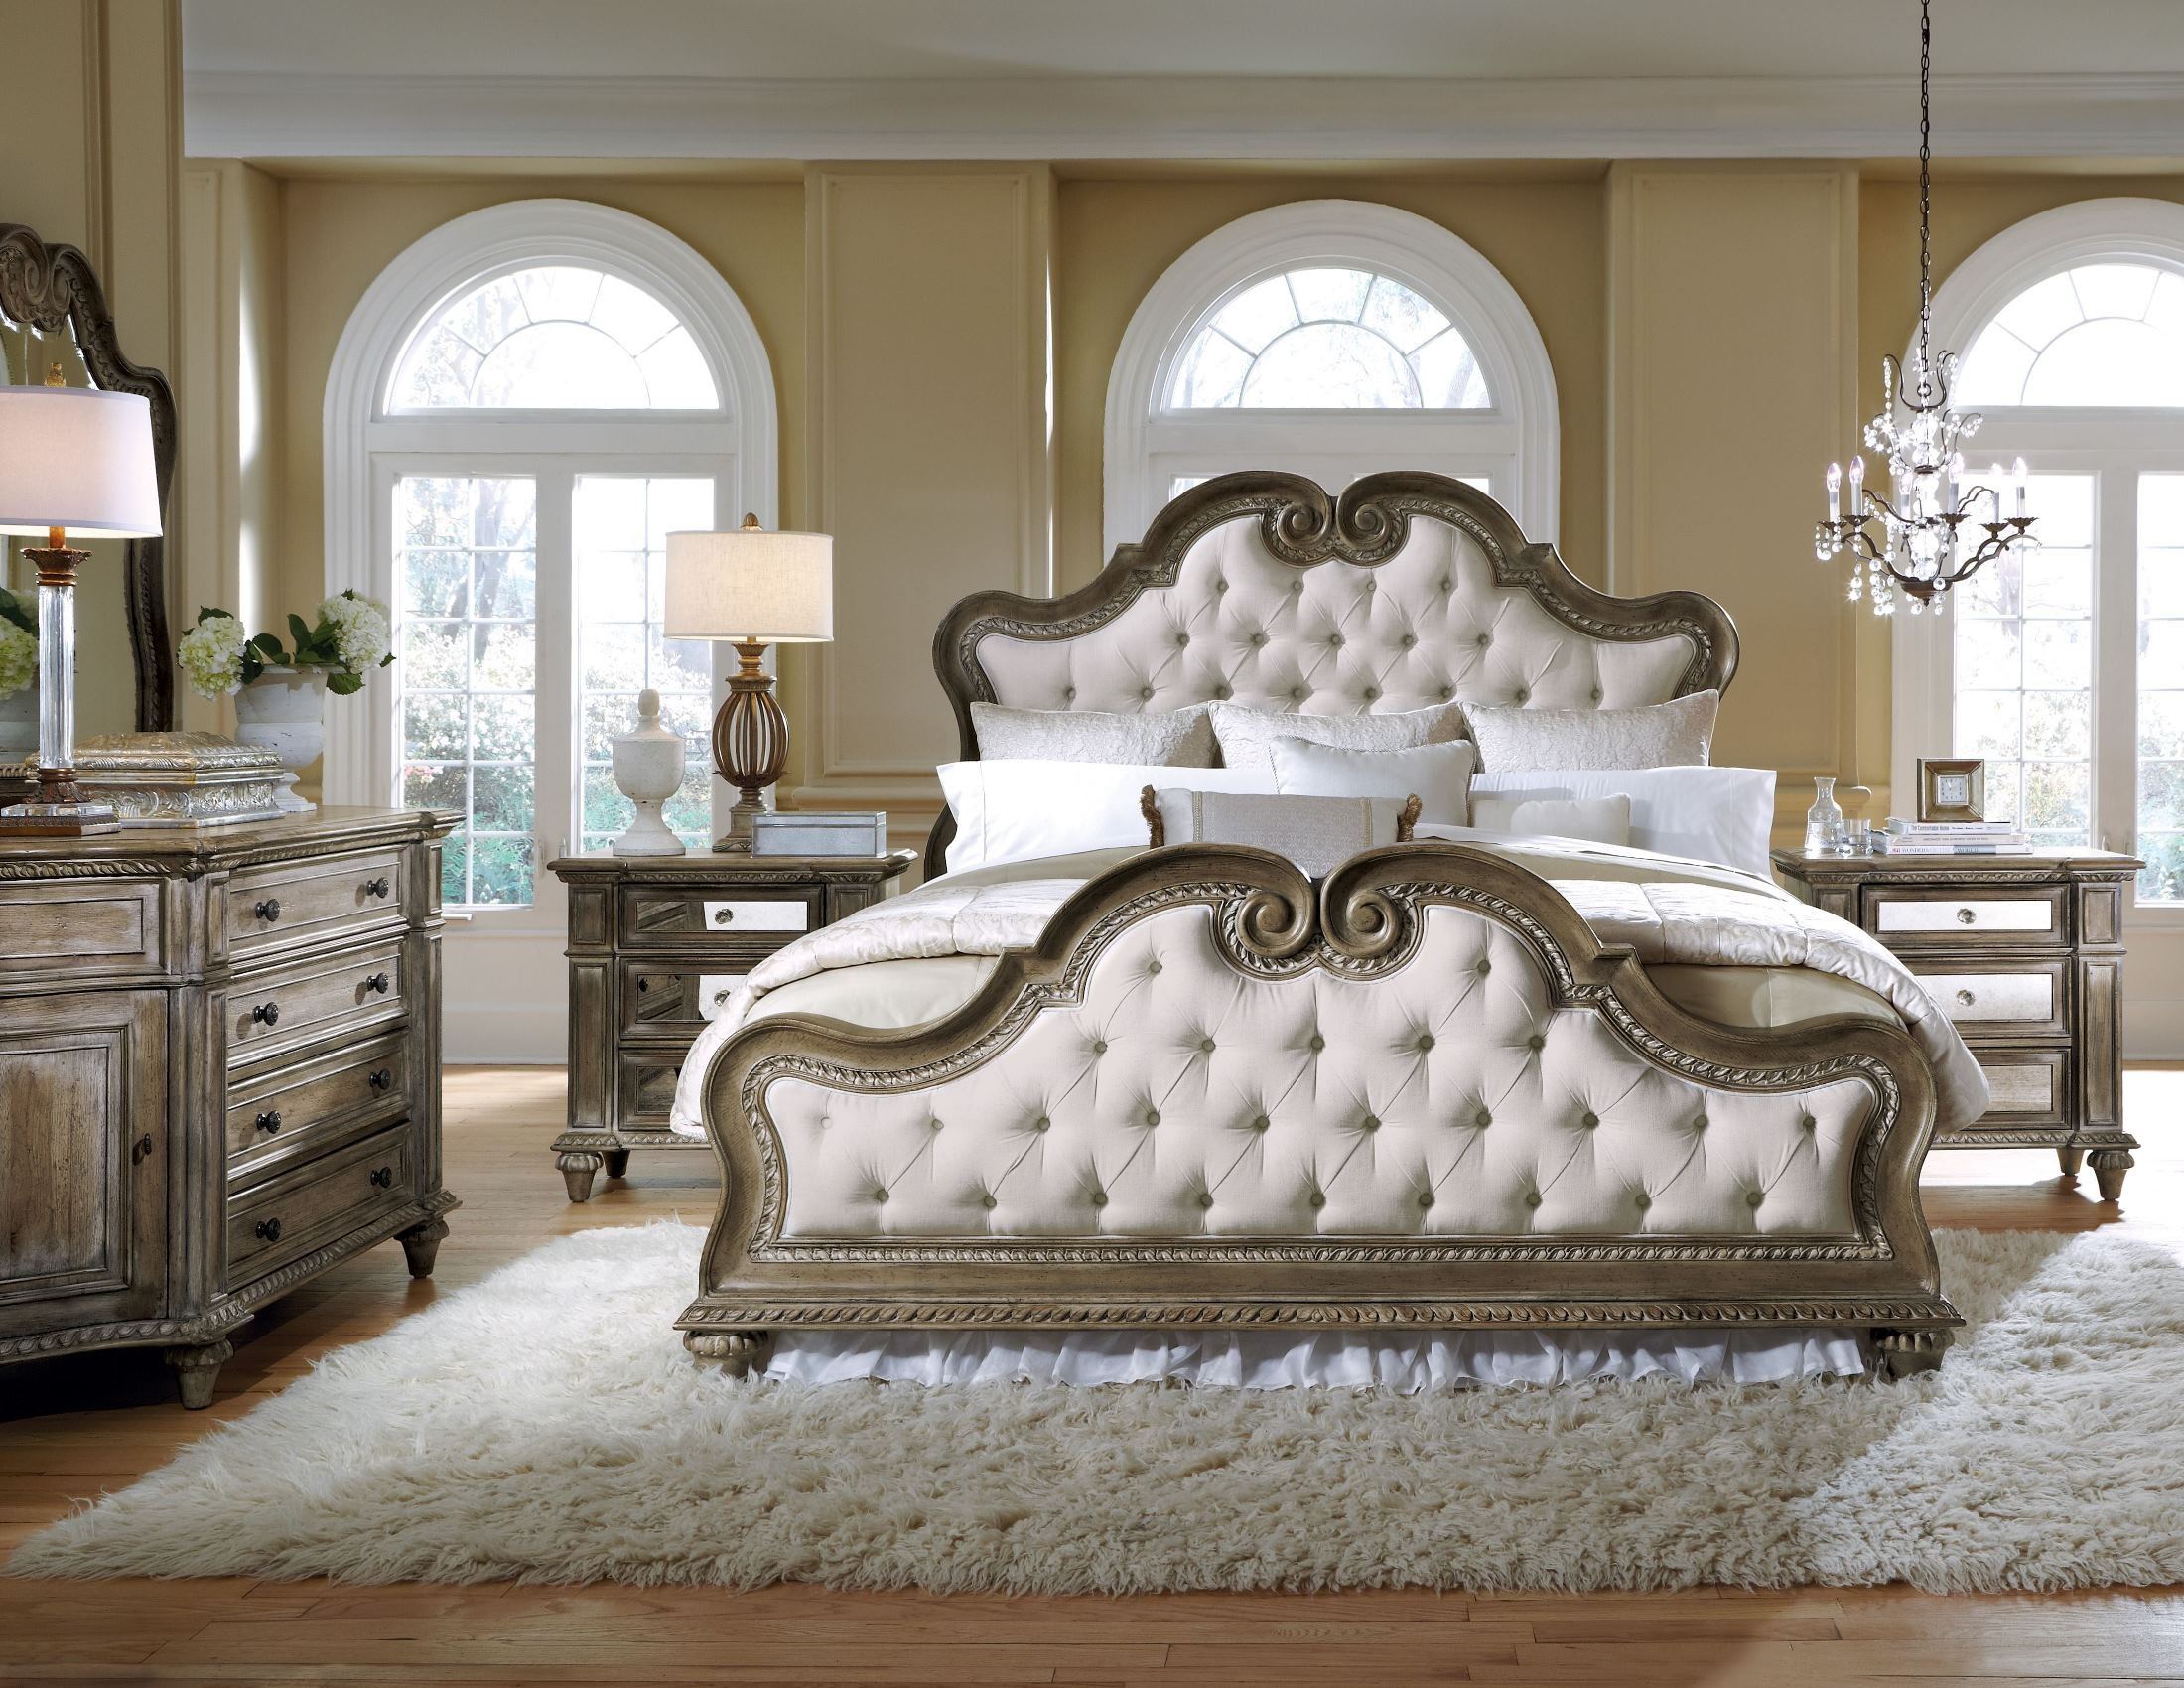 Arabella Upholstered Bedroom Set from Pulaski 211170211171211172  Coleman Furniture